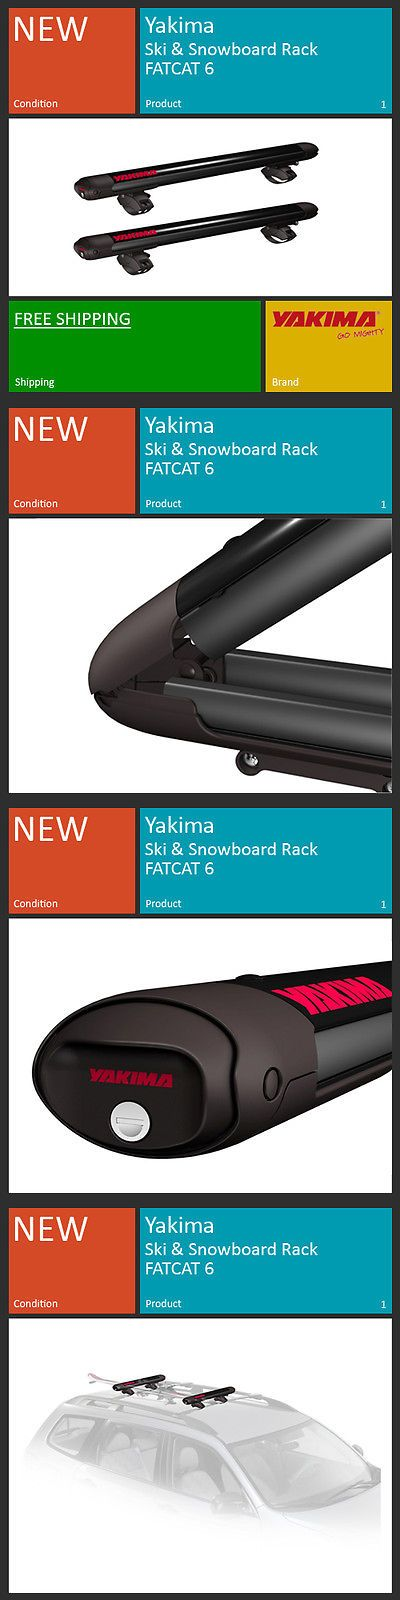 Racks and Carriers 21231: Yakima Ski Snowboard Roof Rack Carriers - Fatcat 6 BUY IT NOW ONLY: $249.0